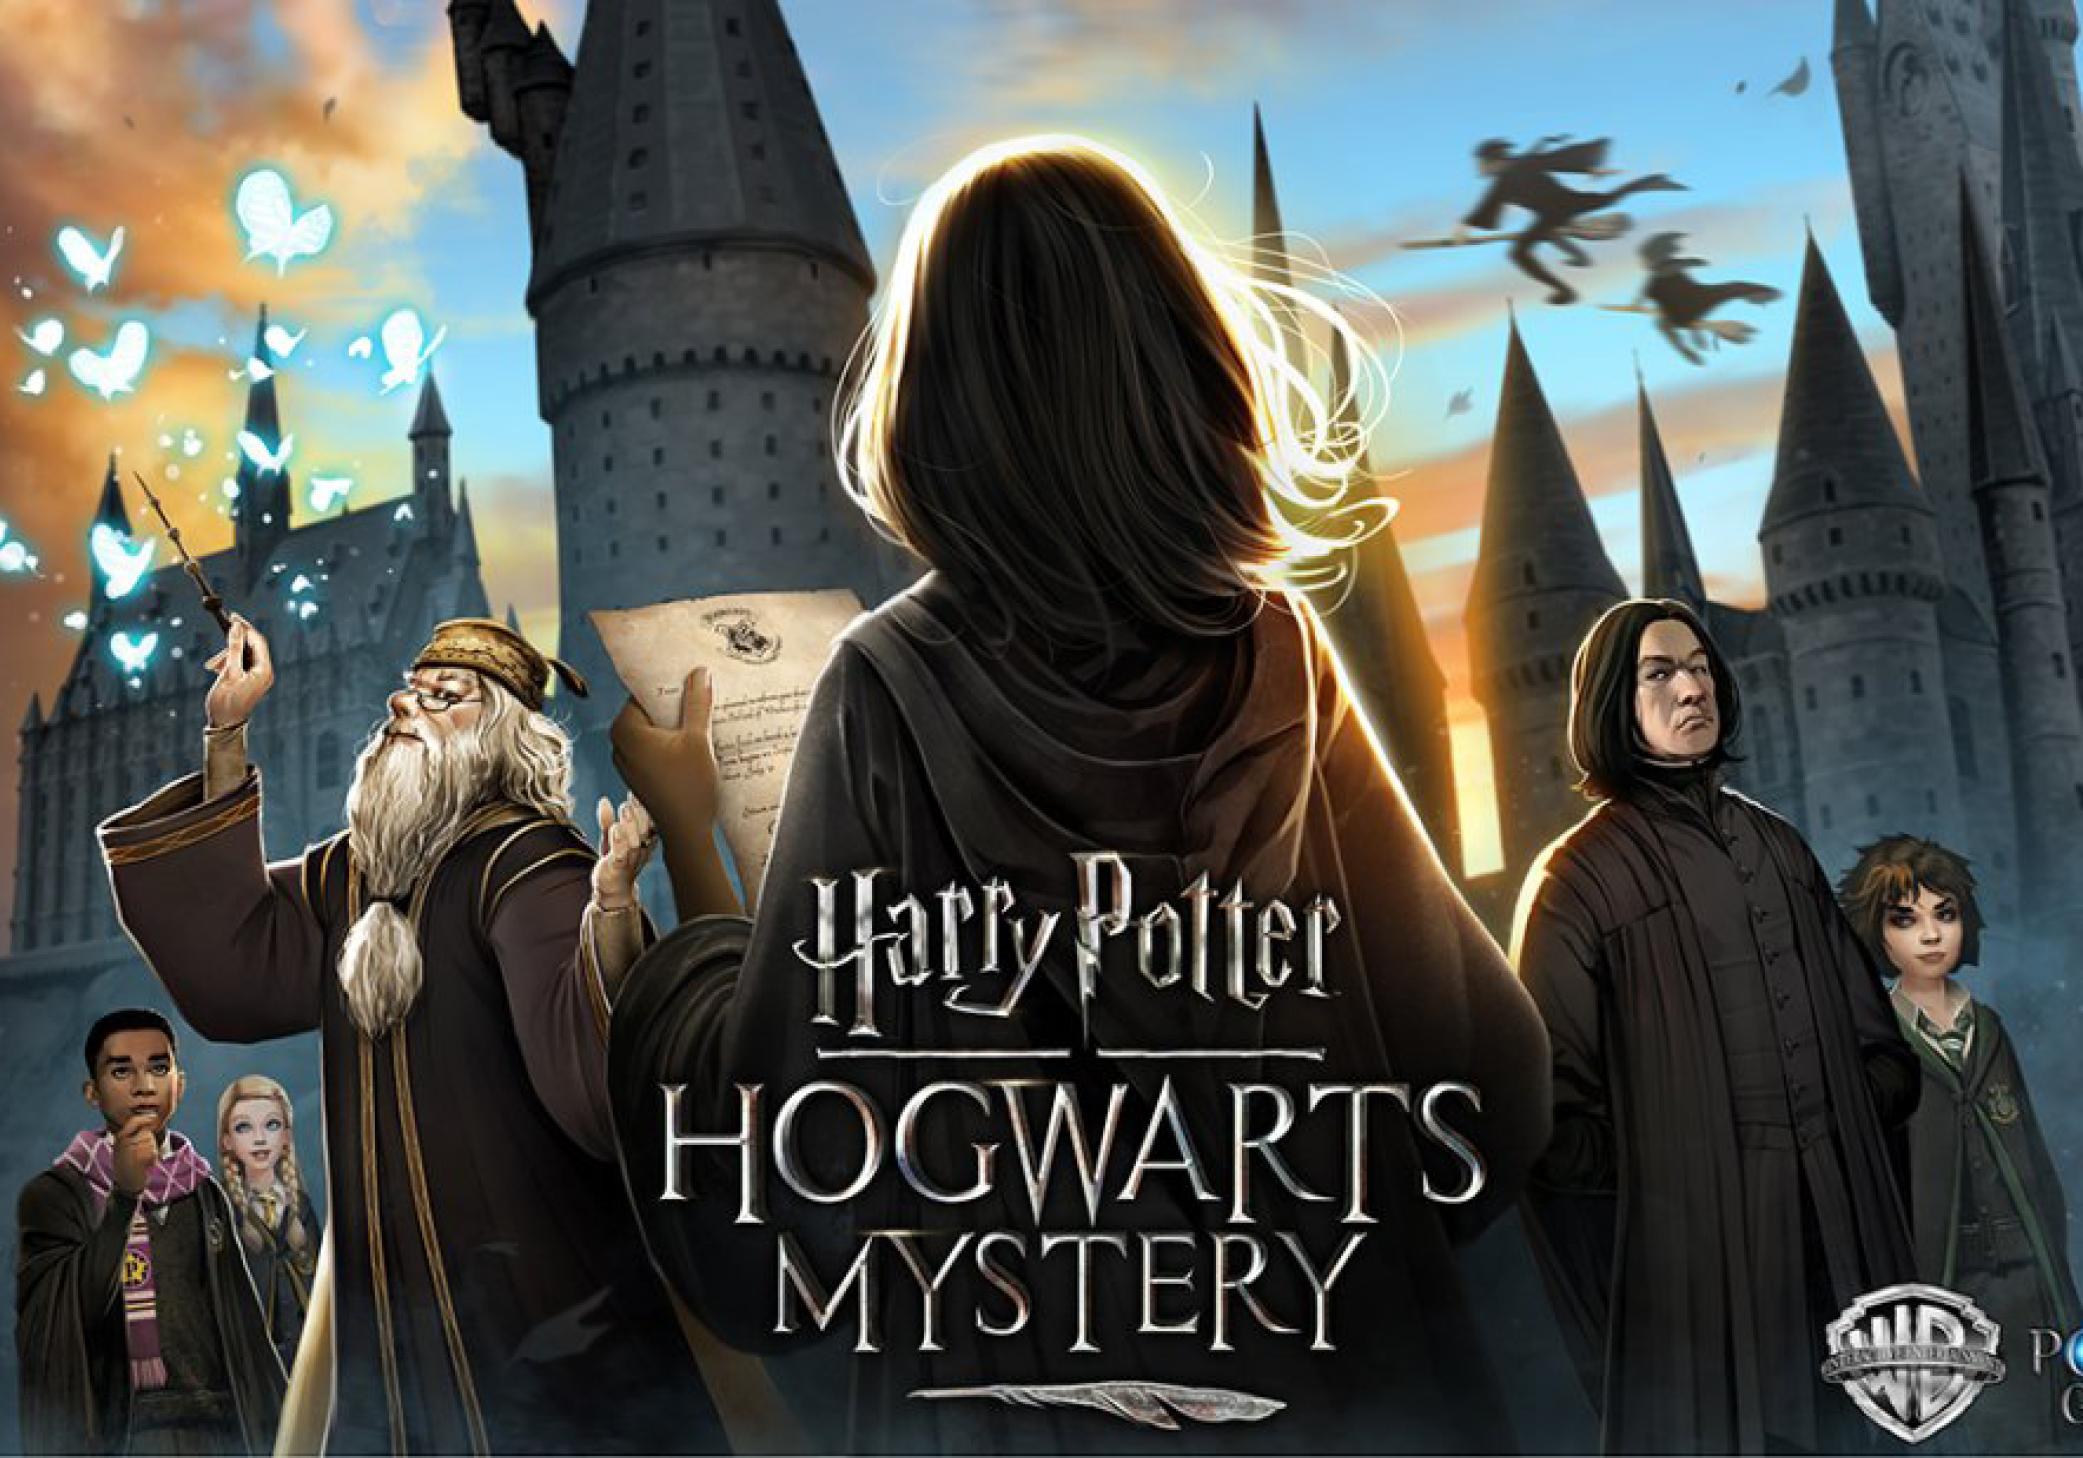 Hogwarts Mystery Harry Potter Game